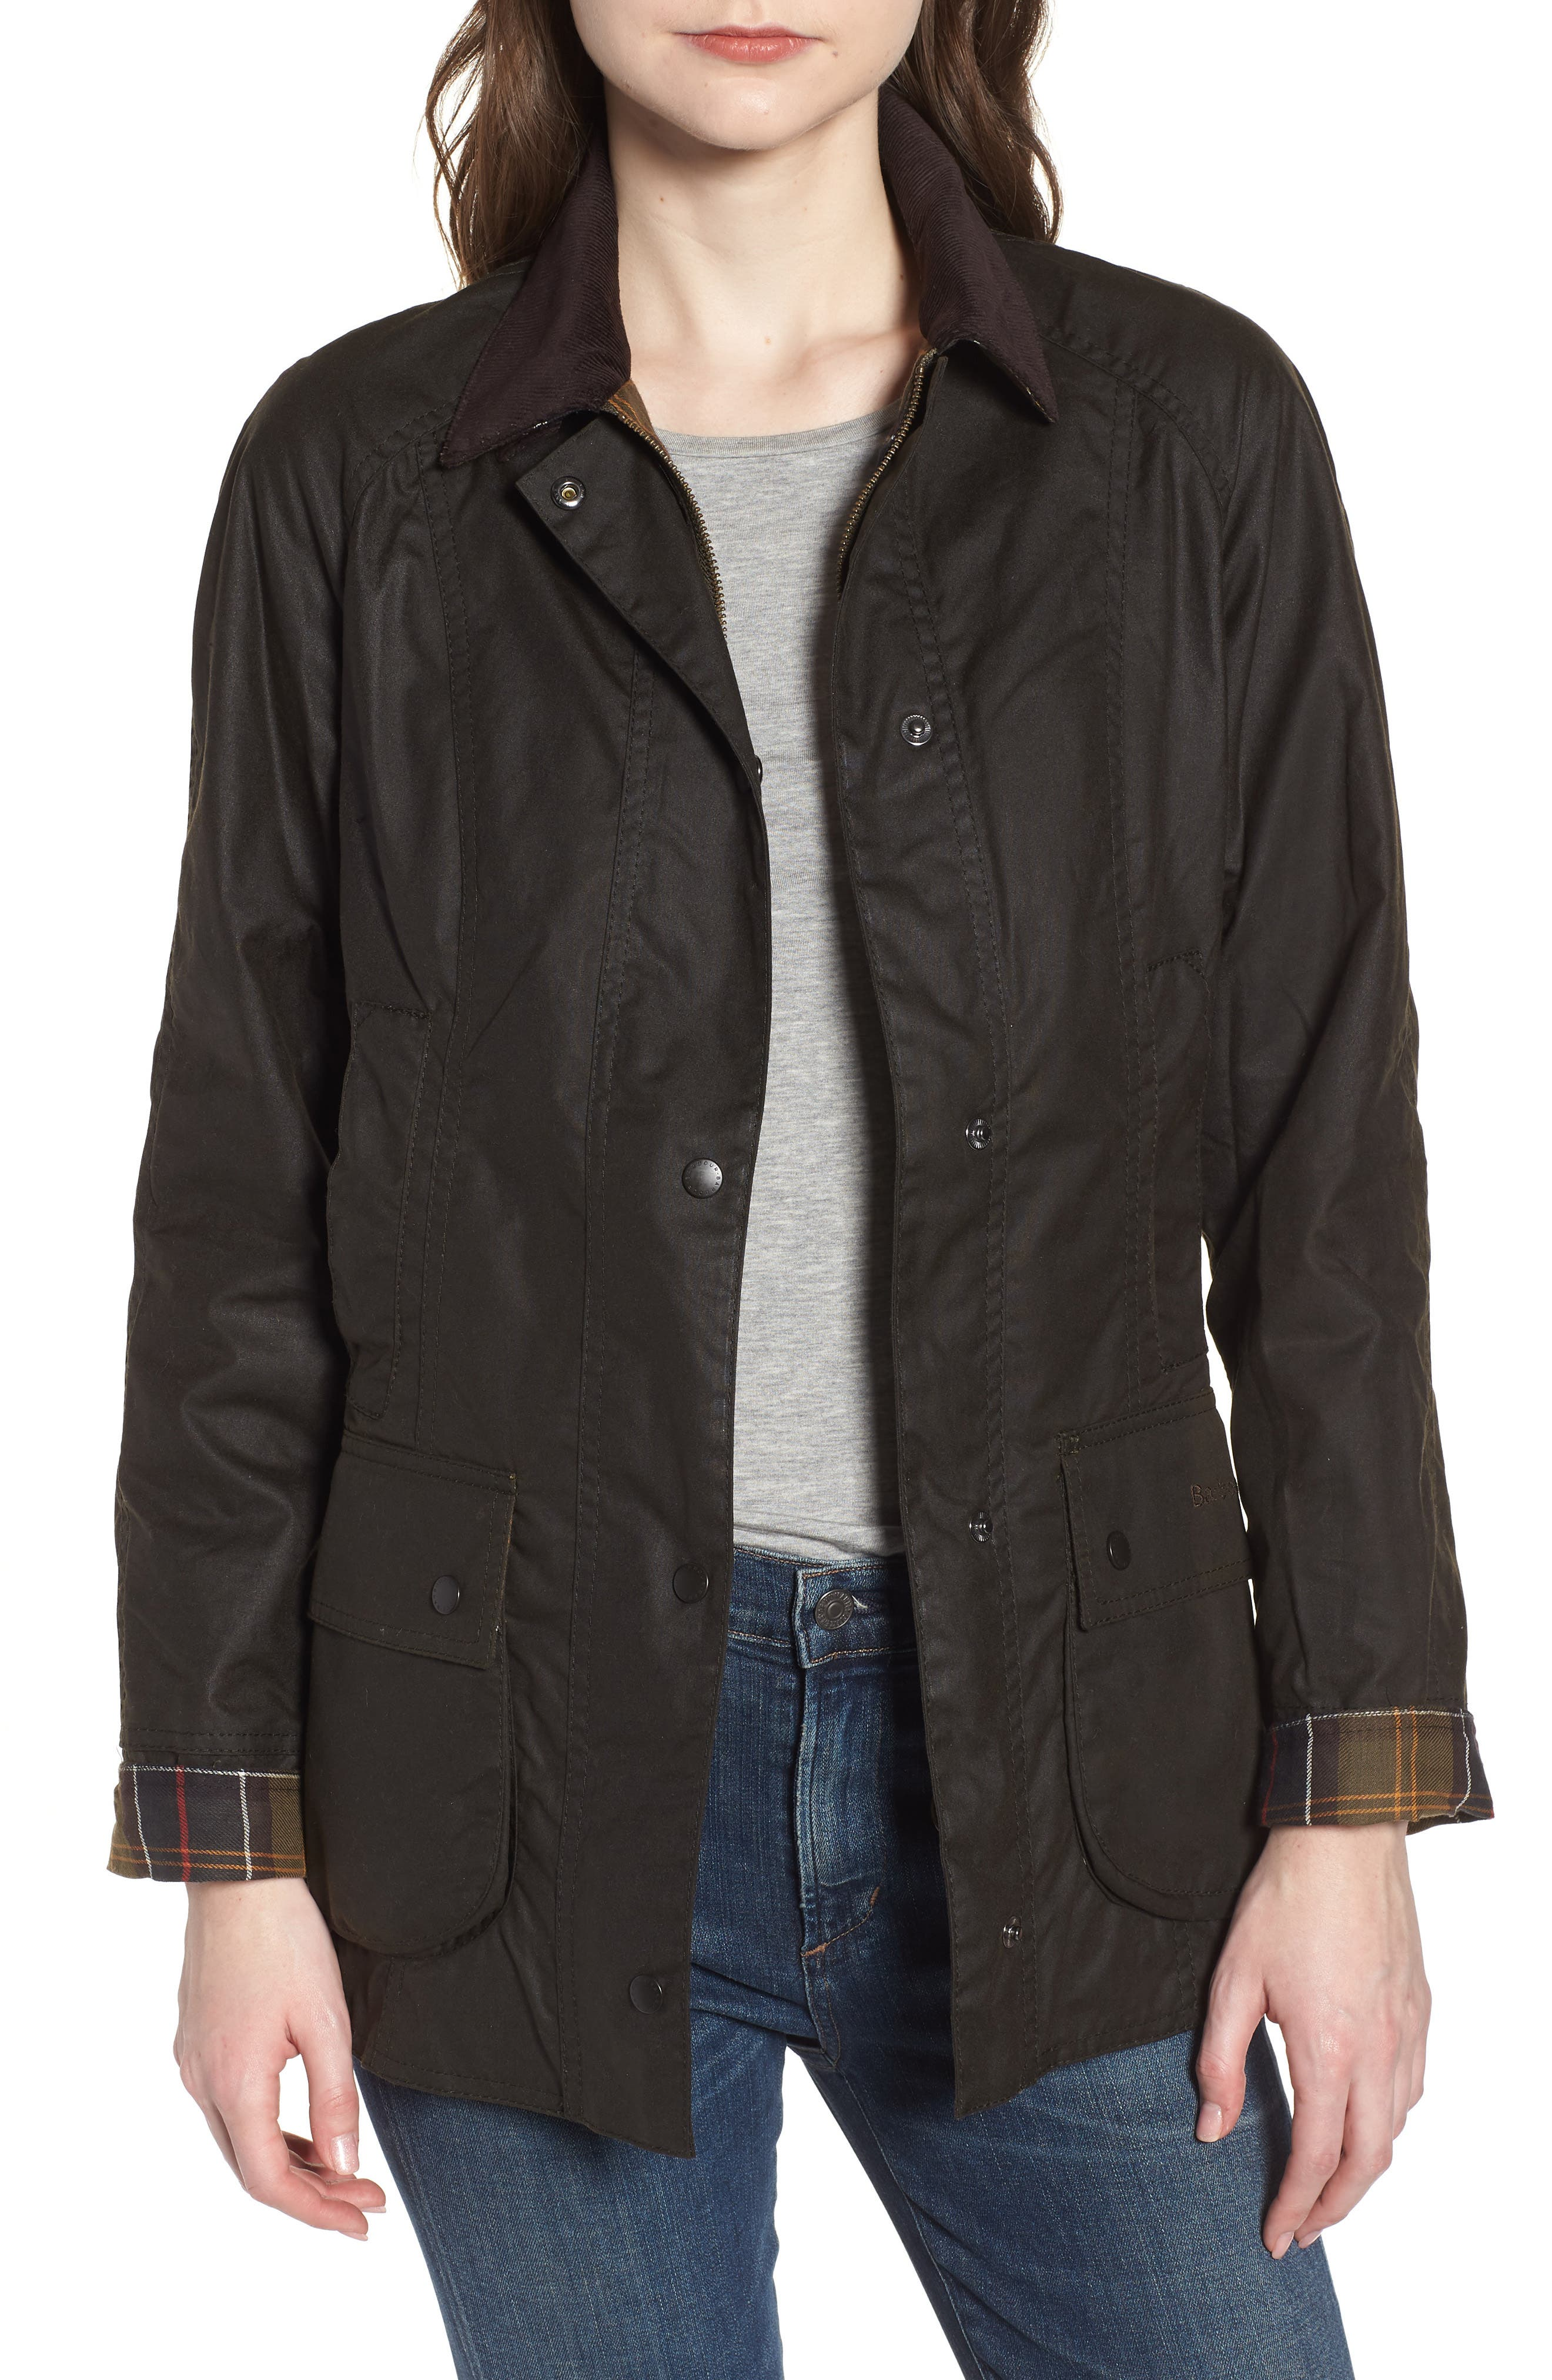 BARBOUR, Beadnell Waxed Cotton Jacket, Main thumbnail 1, color, 300